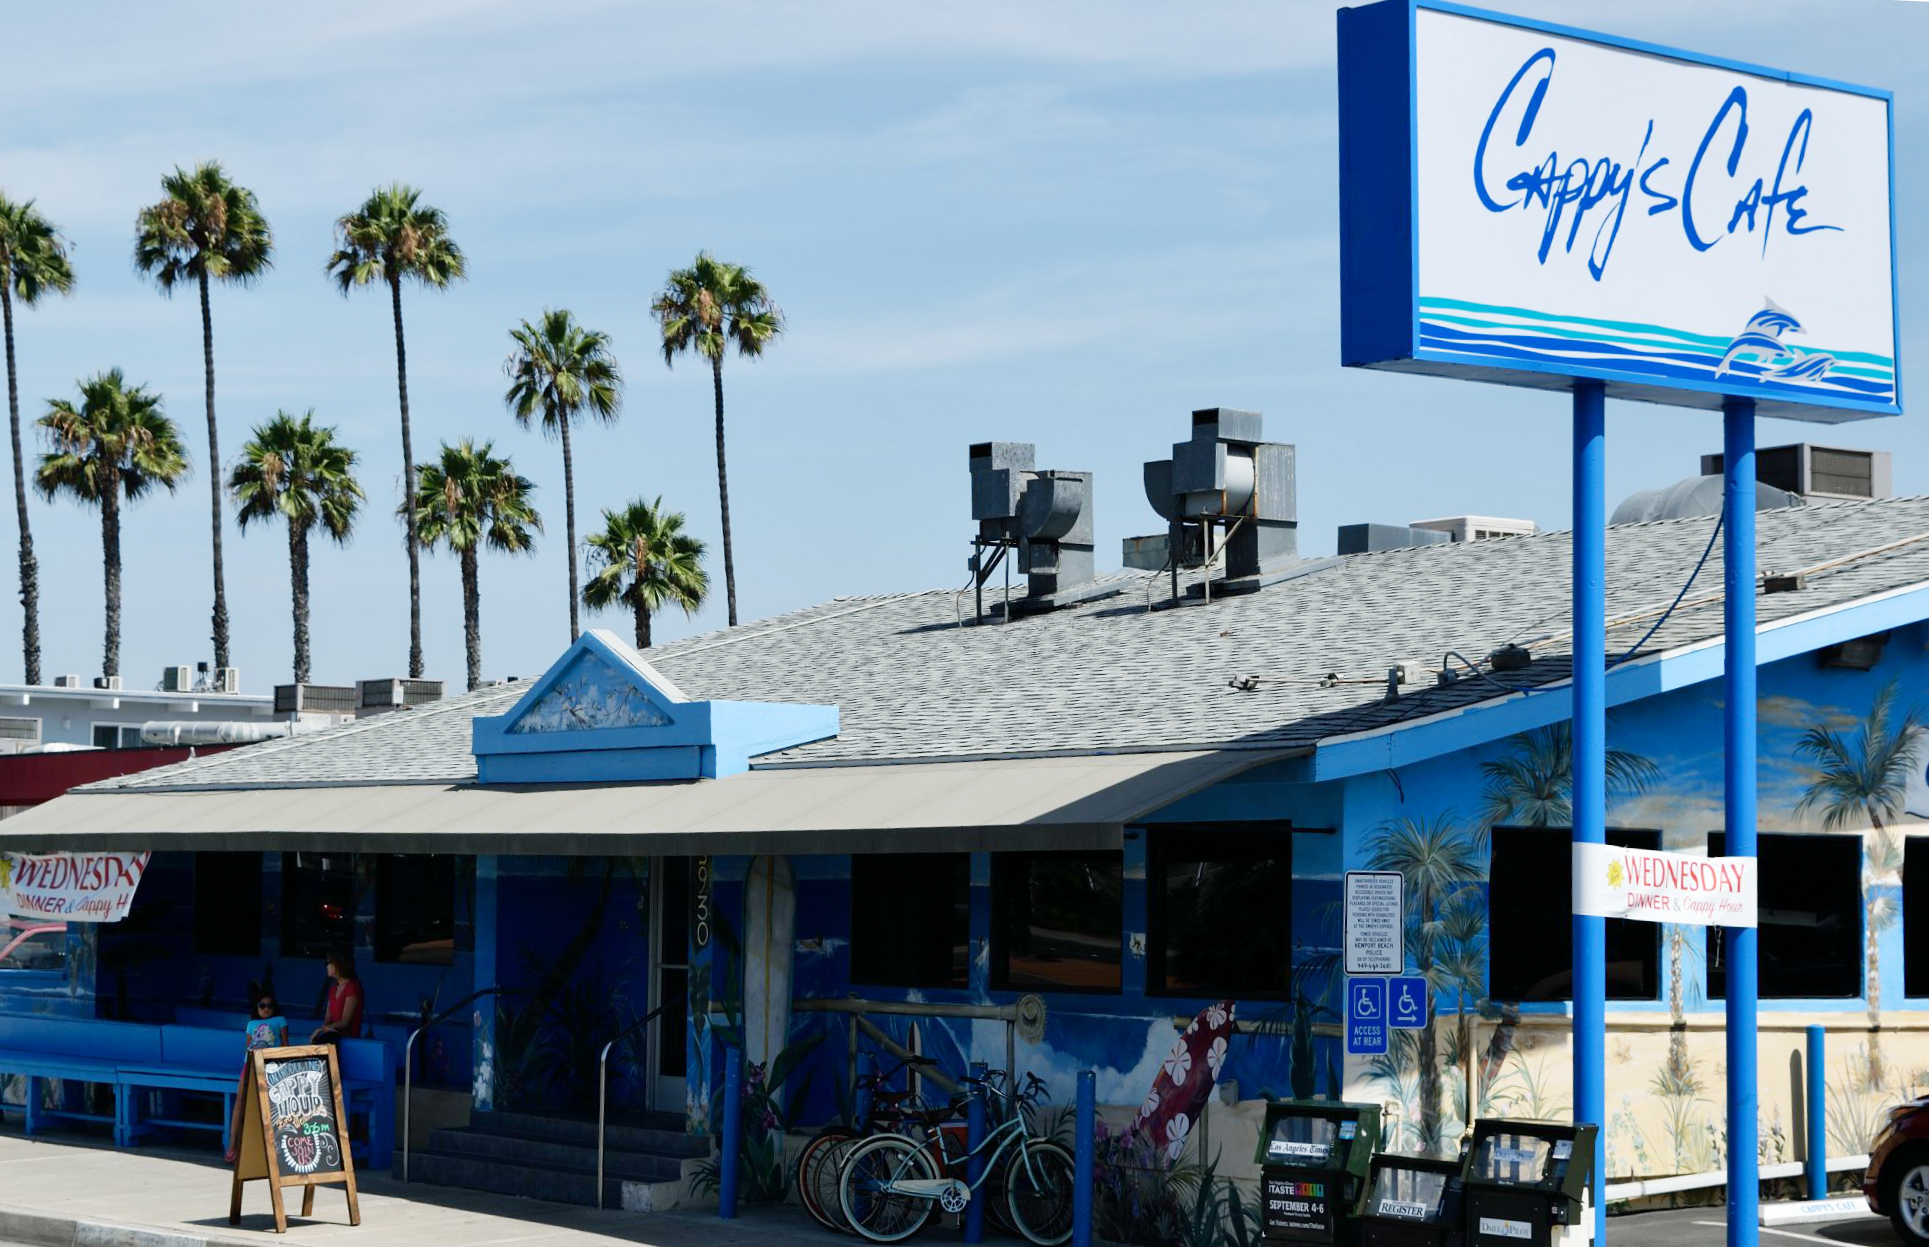 Cappy's sits along PCH, or Pacific Coast Highway, a 655 mile stretch of road extending from its southern terminus in Orange County (population 3,000,000+), to its northern terminus outside the town of Leggett, CA (population 122).